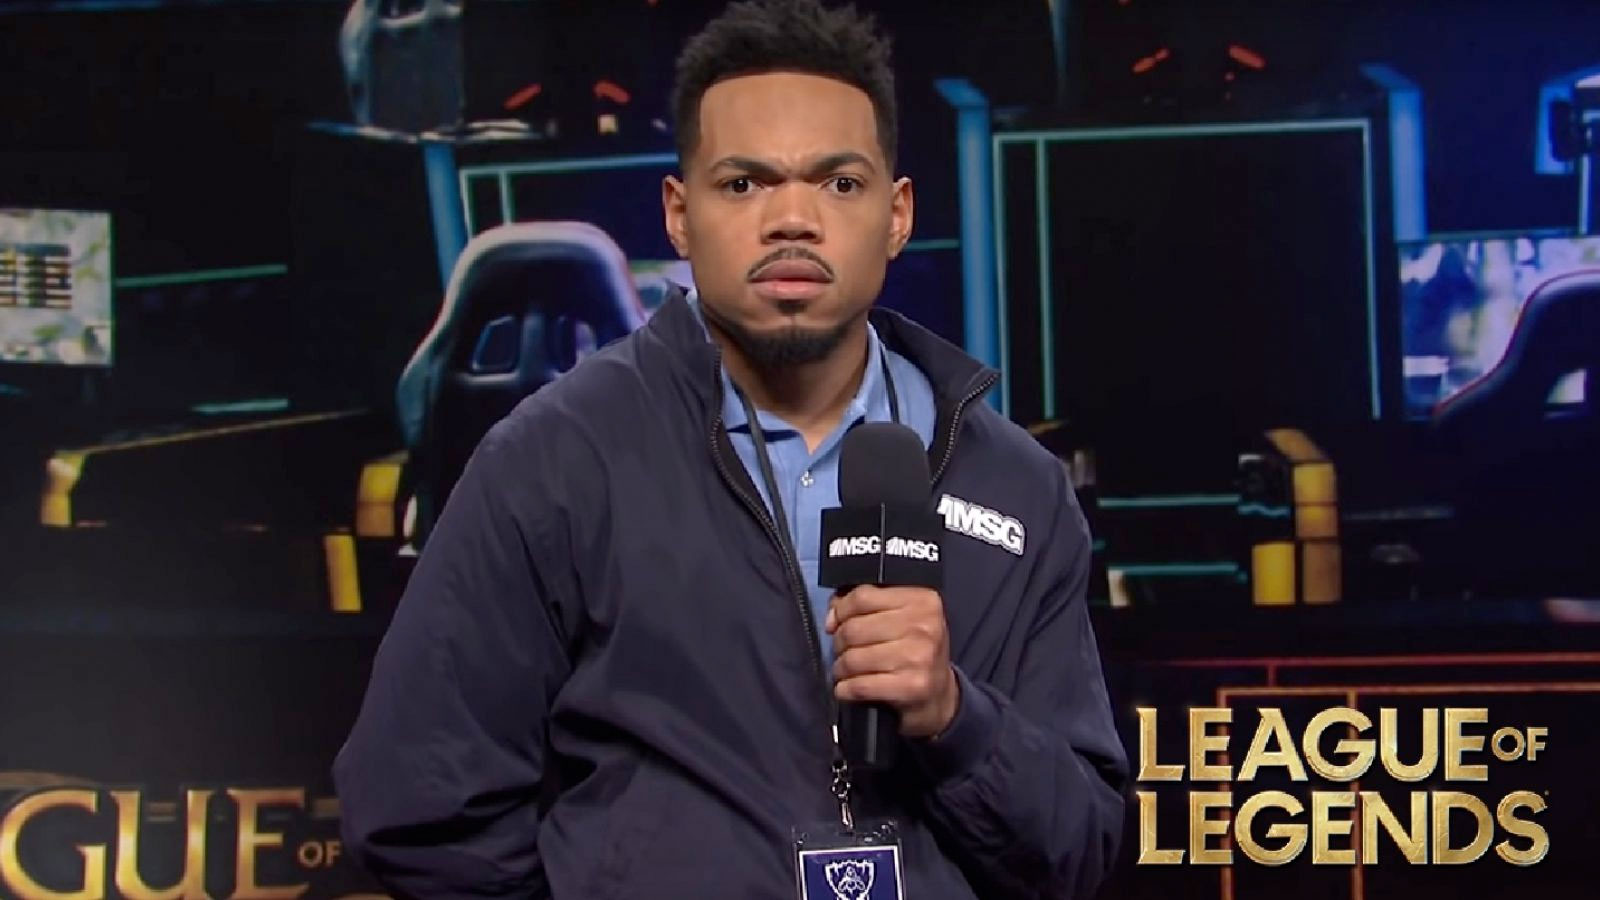 Chance The Rapper as an eSports announcer on SNL